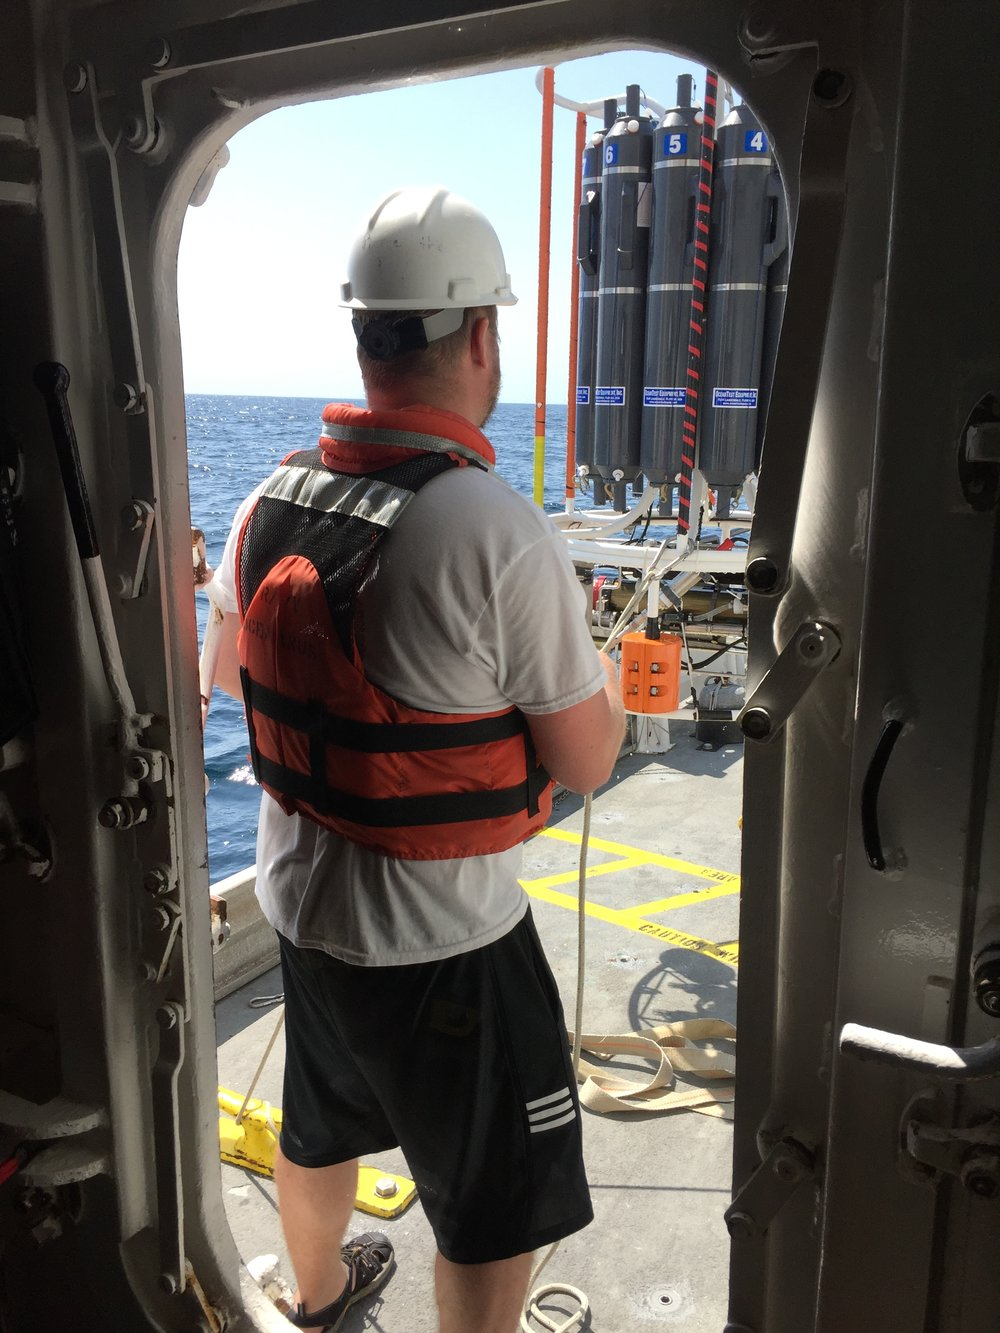 Photo of Mike Henson helping to secure water samples collected onboard the  R/V Oceanus